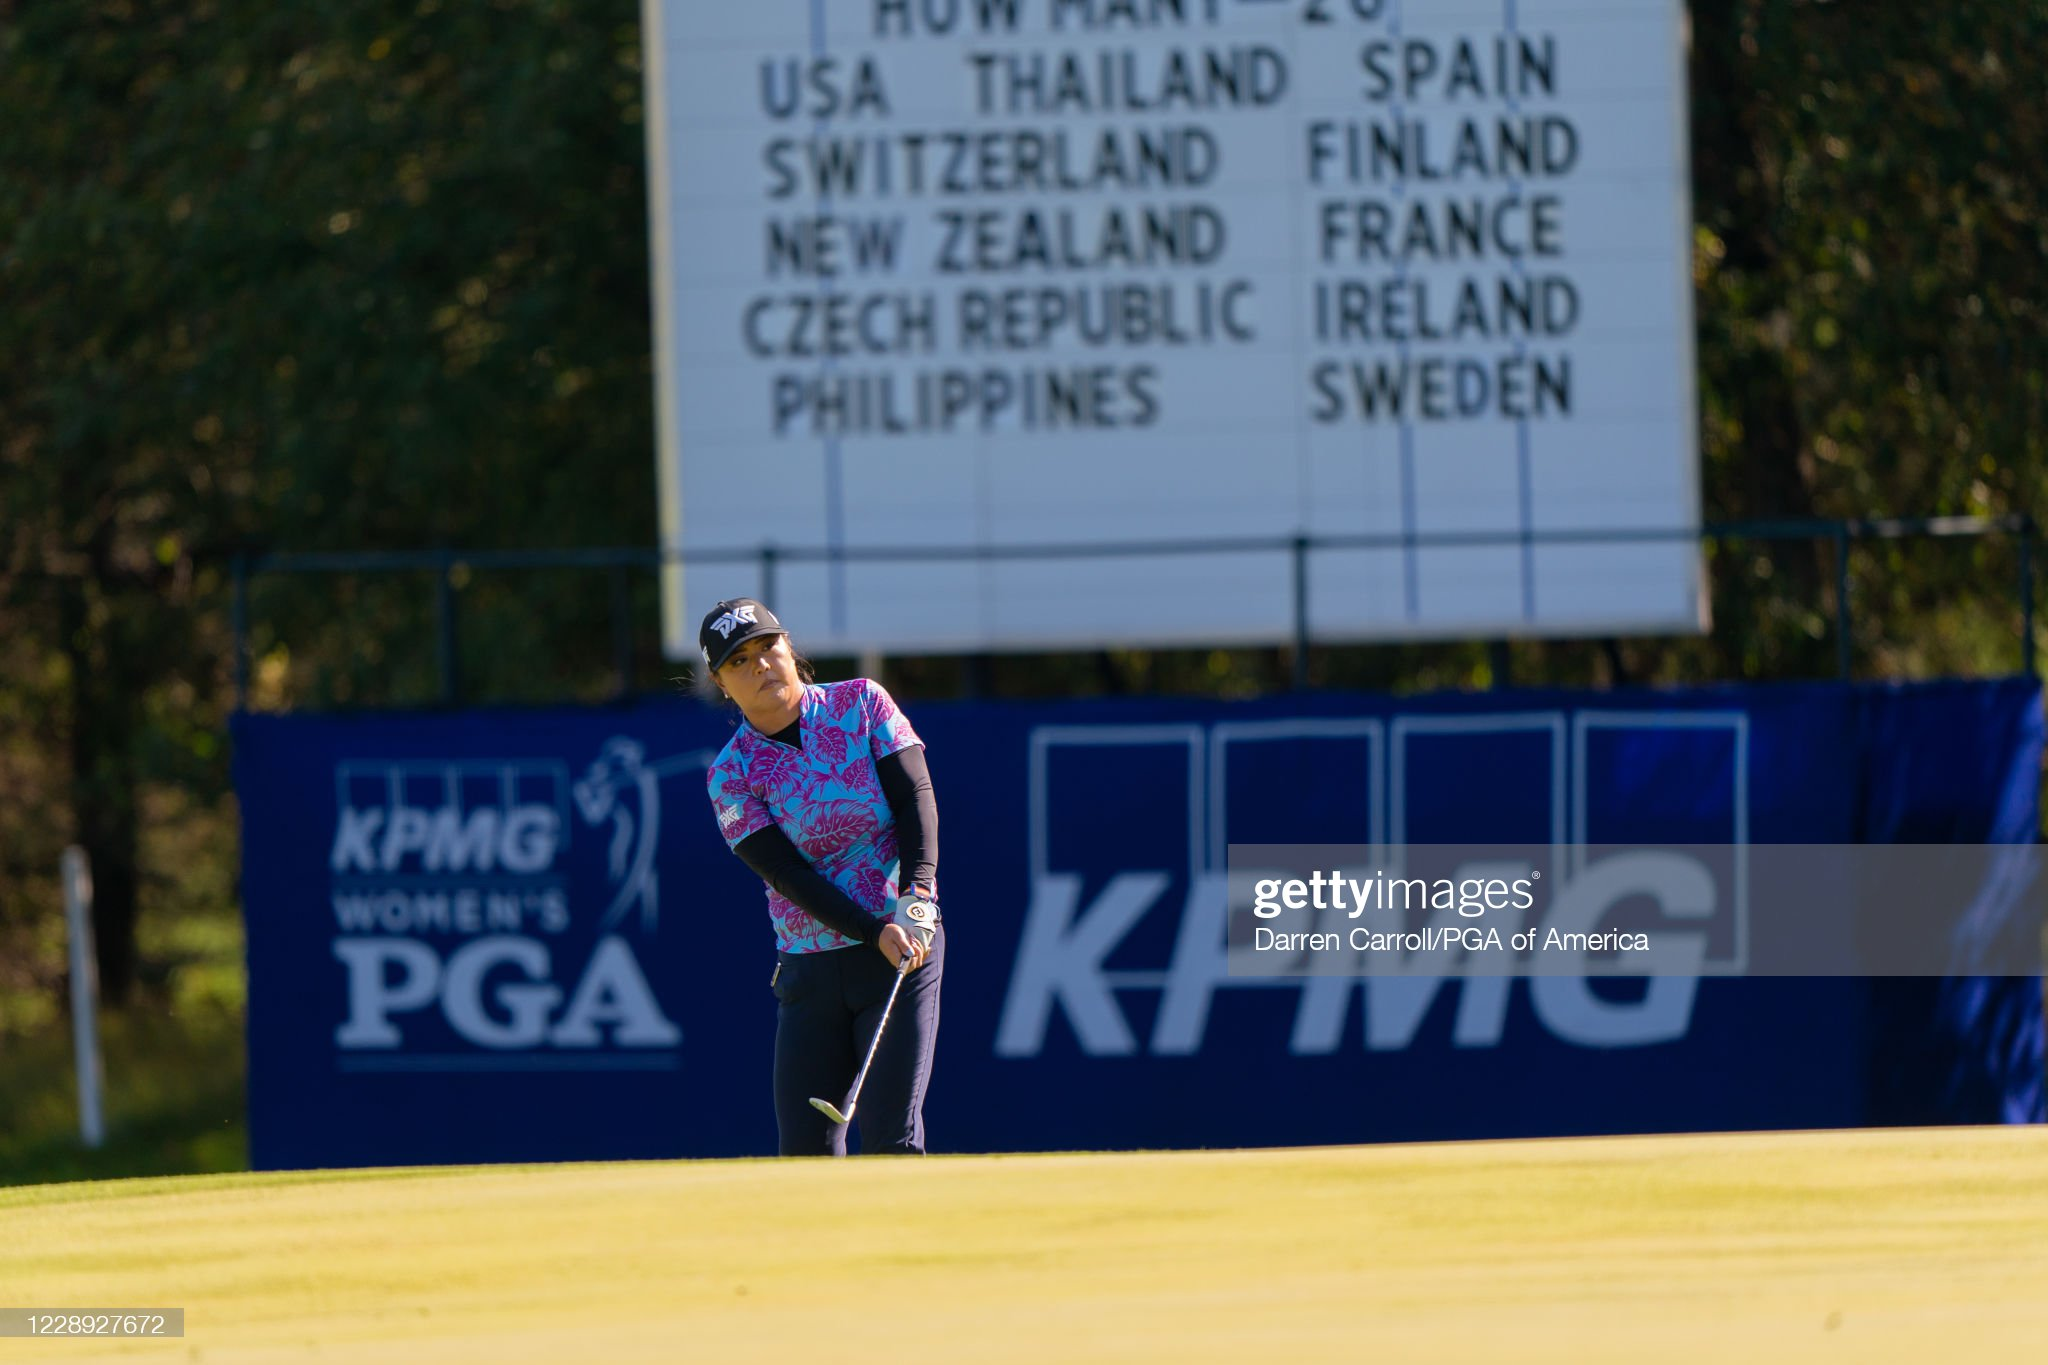 https://media.gettyimages.com/photos/sei-young-kim-of-the-republic-of-korea-chips-onto-the-13th-green-a-picture-id1228927672?s=2048x2048